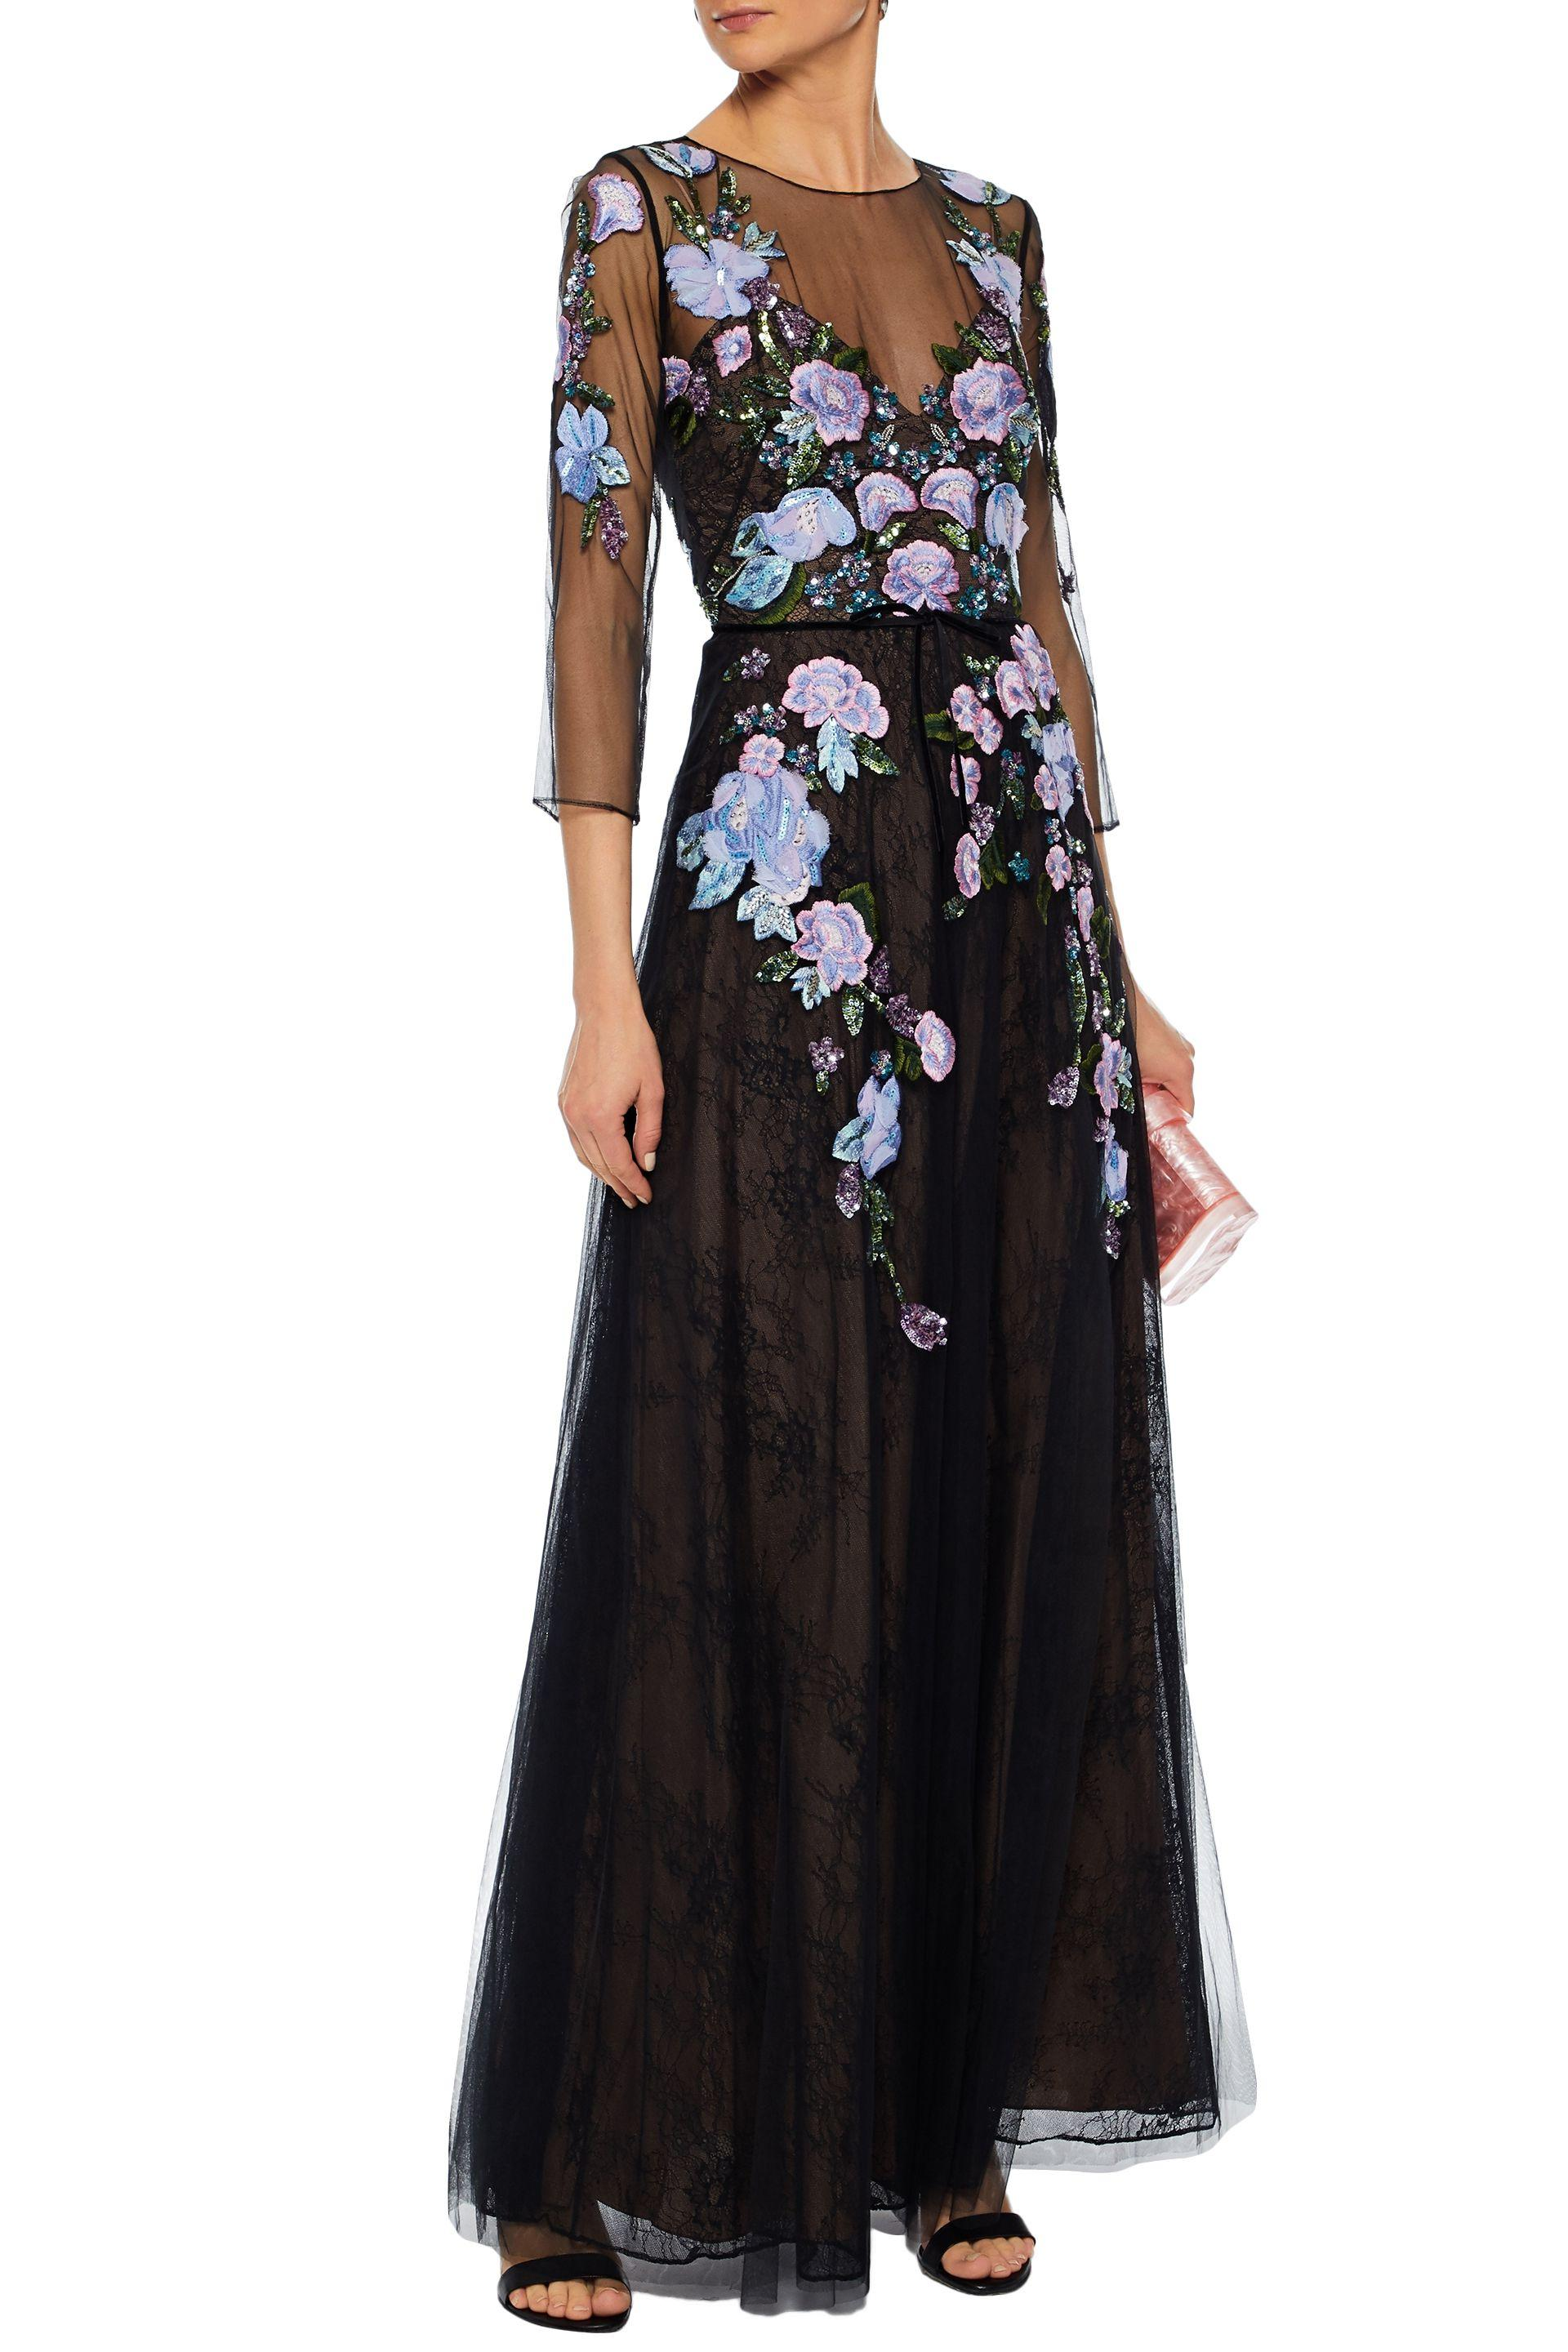 8d212b65 Marchesa notte - Woman Embellished Tulle Gown Black - Lyst. View fullscreen